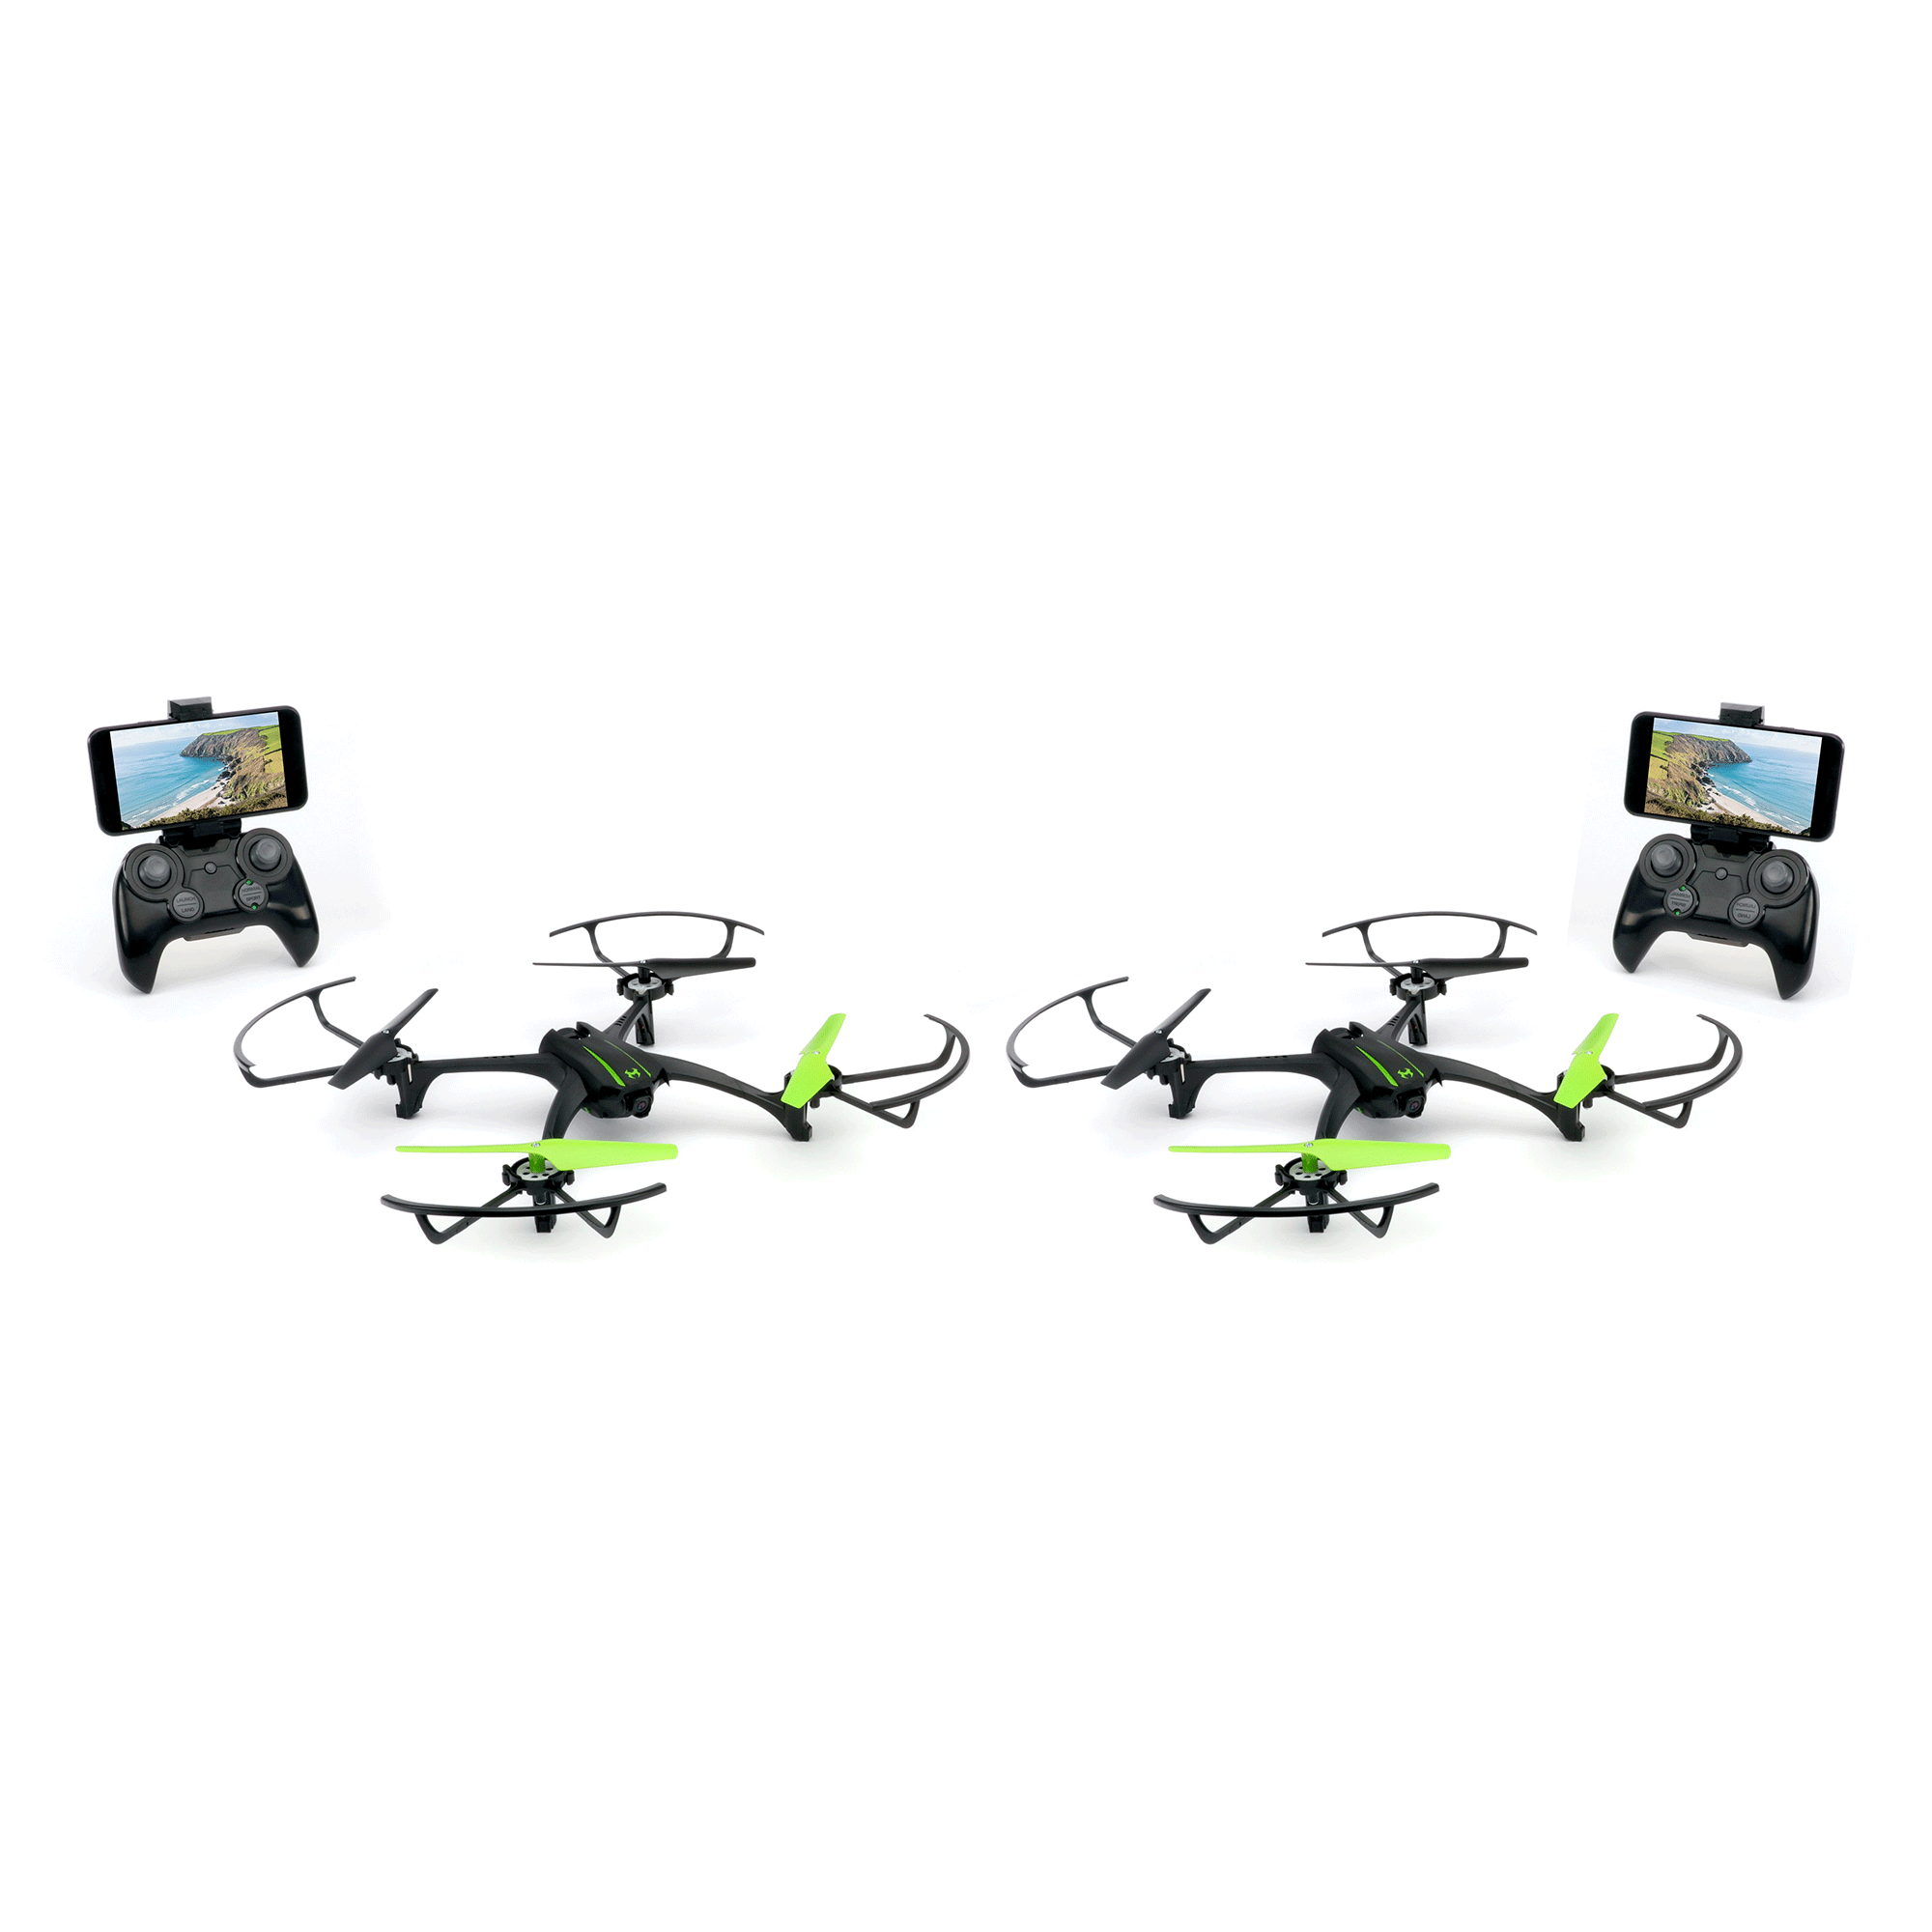 Sky Viper Scout Live Streaming Amp Video Recording Rc Drone